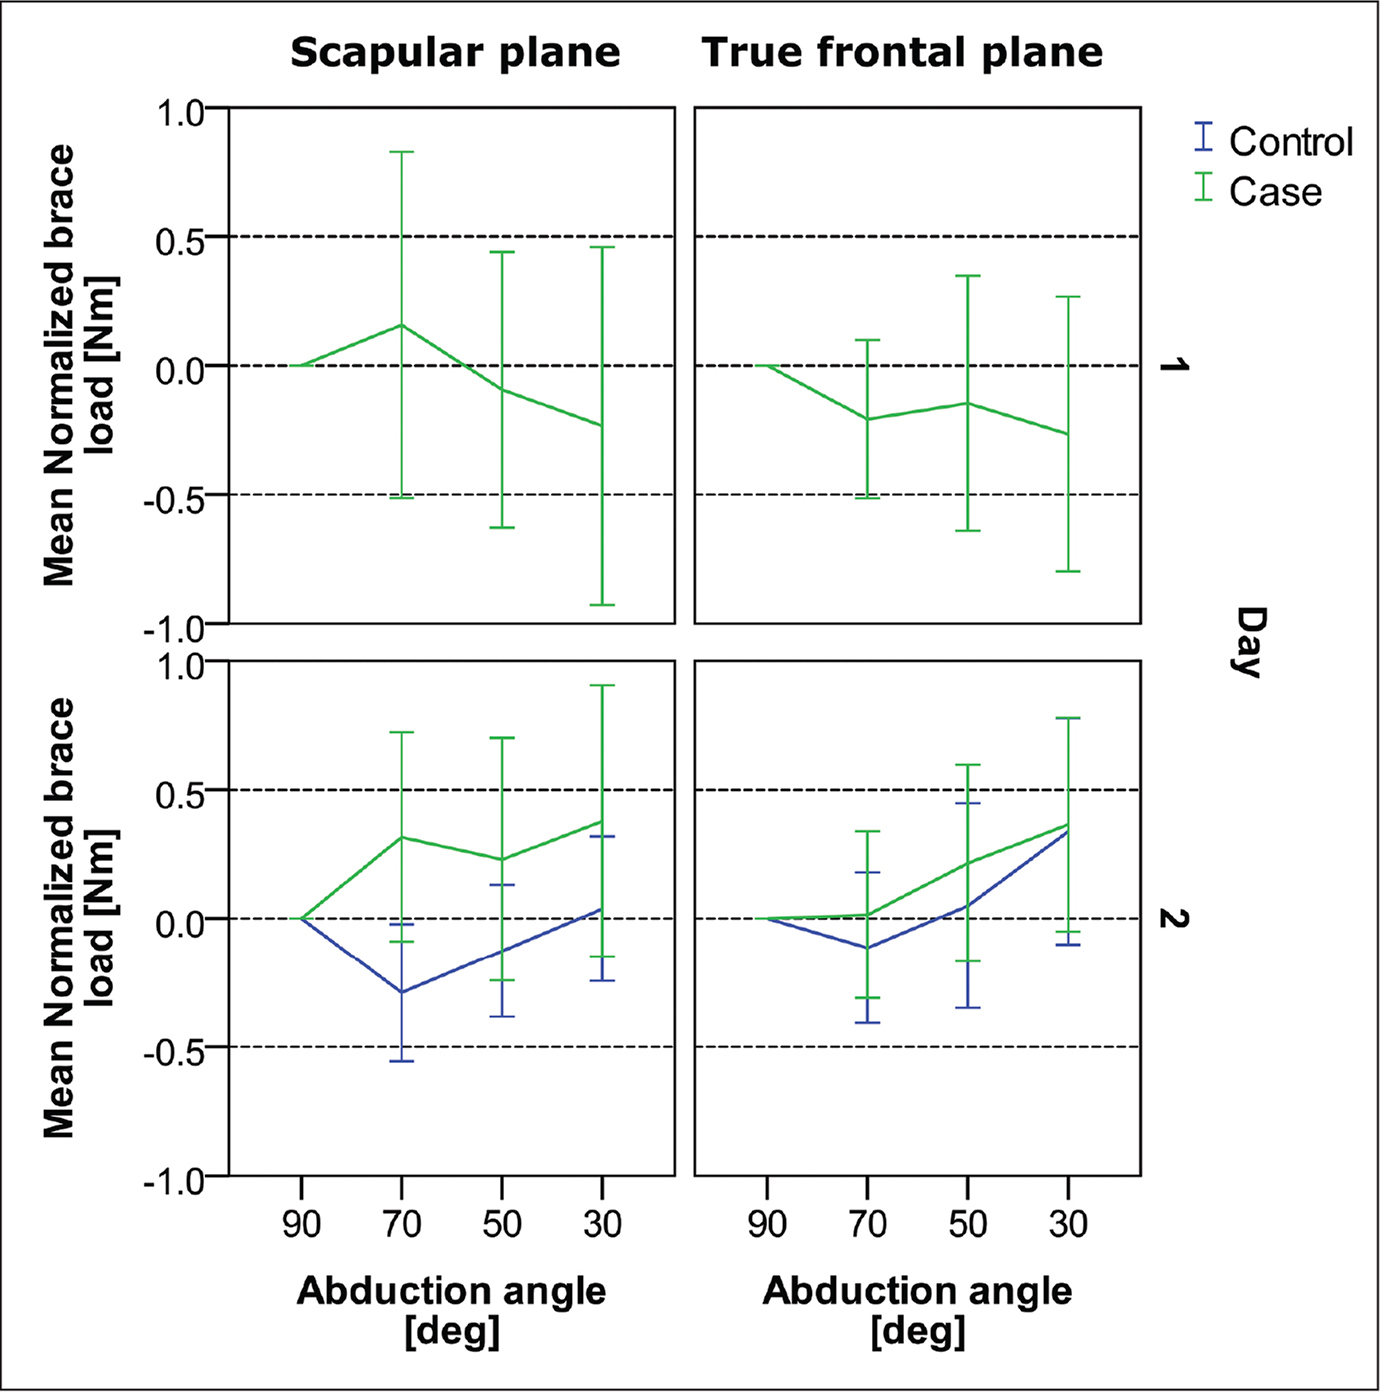 Load on the brace in the true frontal and the scapular planes on day 1 and day 2. The green line indicates patients' load, and the blue line indicates the load on the brace of the healthy control group. Positive brace loads indicate more weight onto the brace, while negative values indicate involvement of abduction muscles.